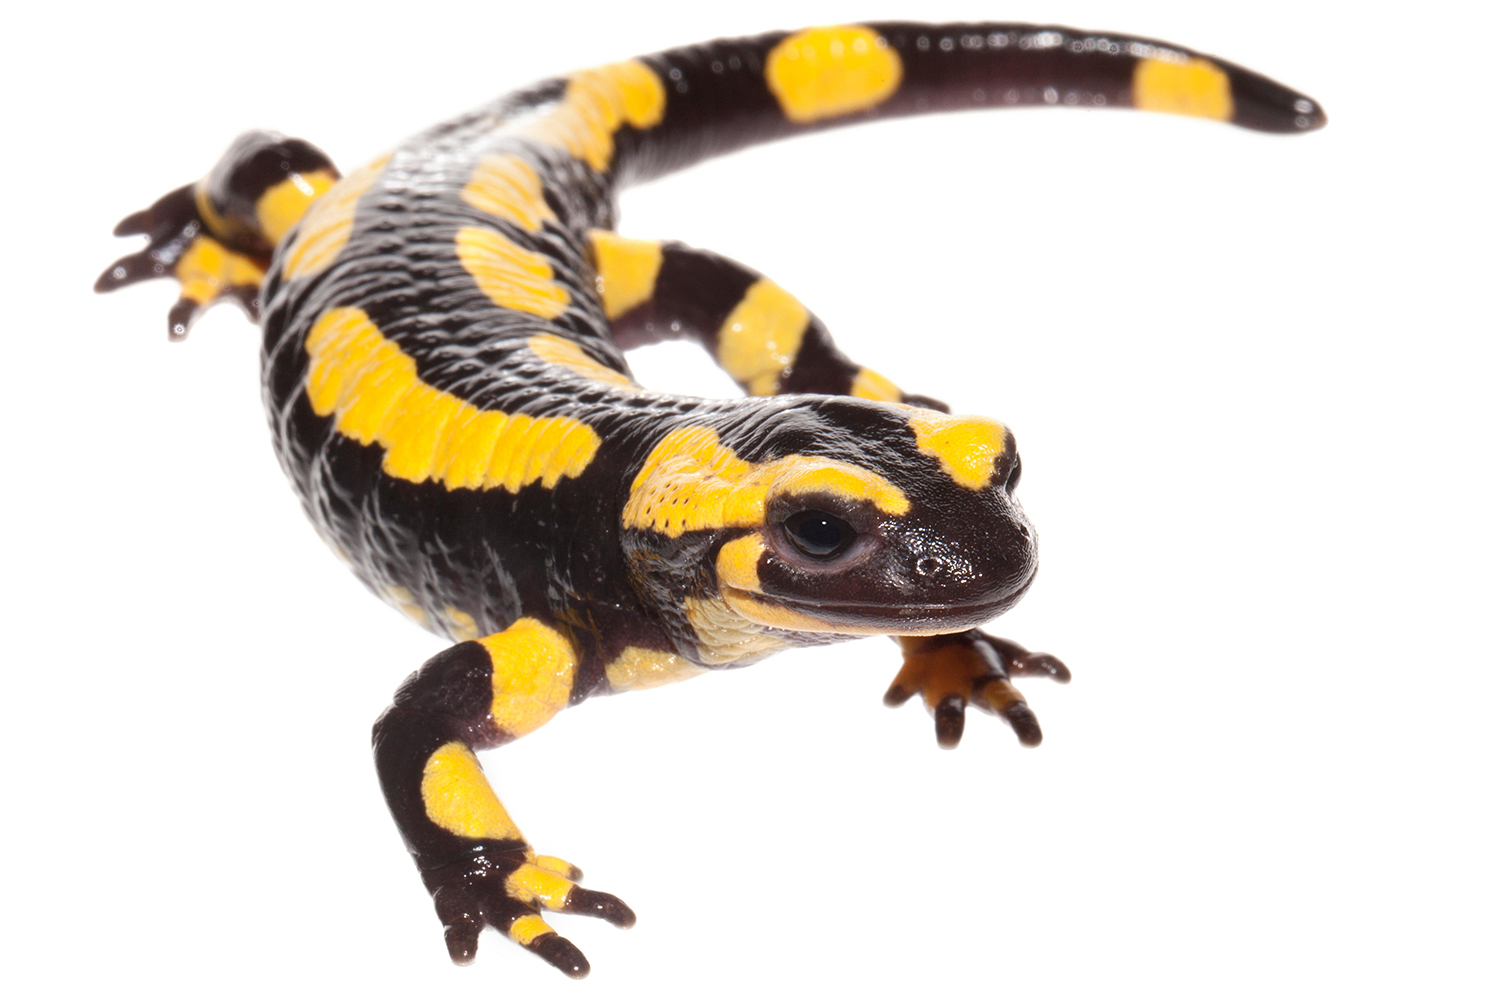 Detransitioners chose the salamander as their mascot because of its ability to regenerate organs and limbs